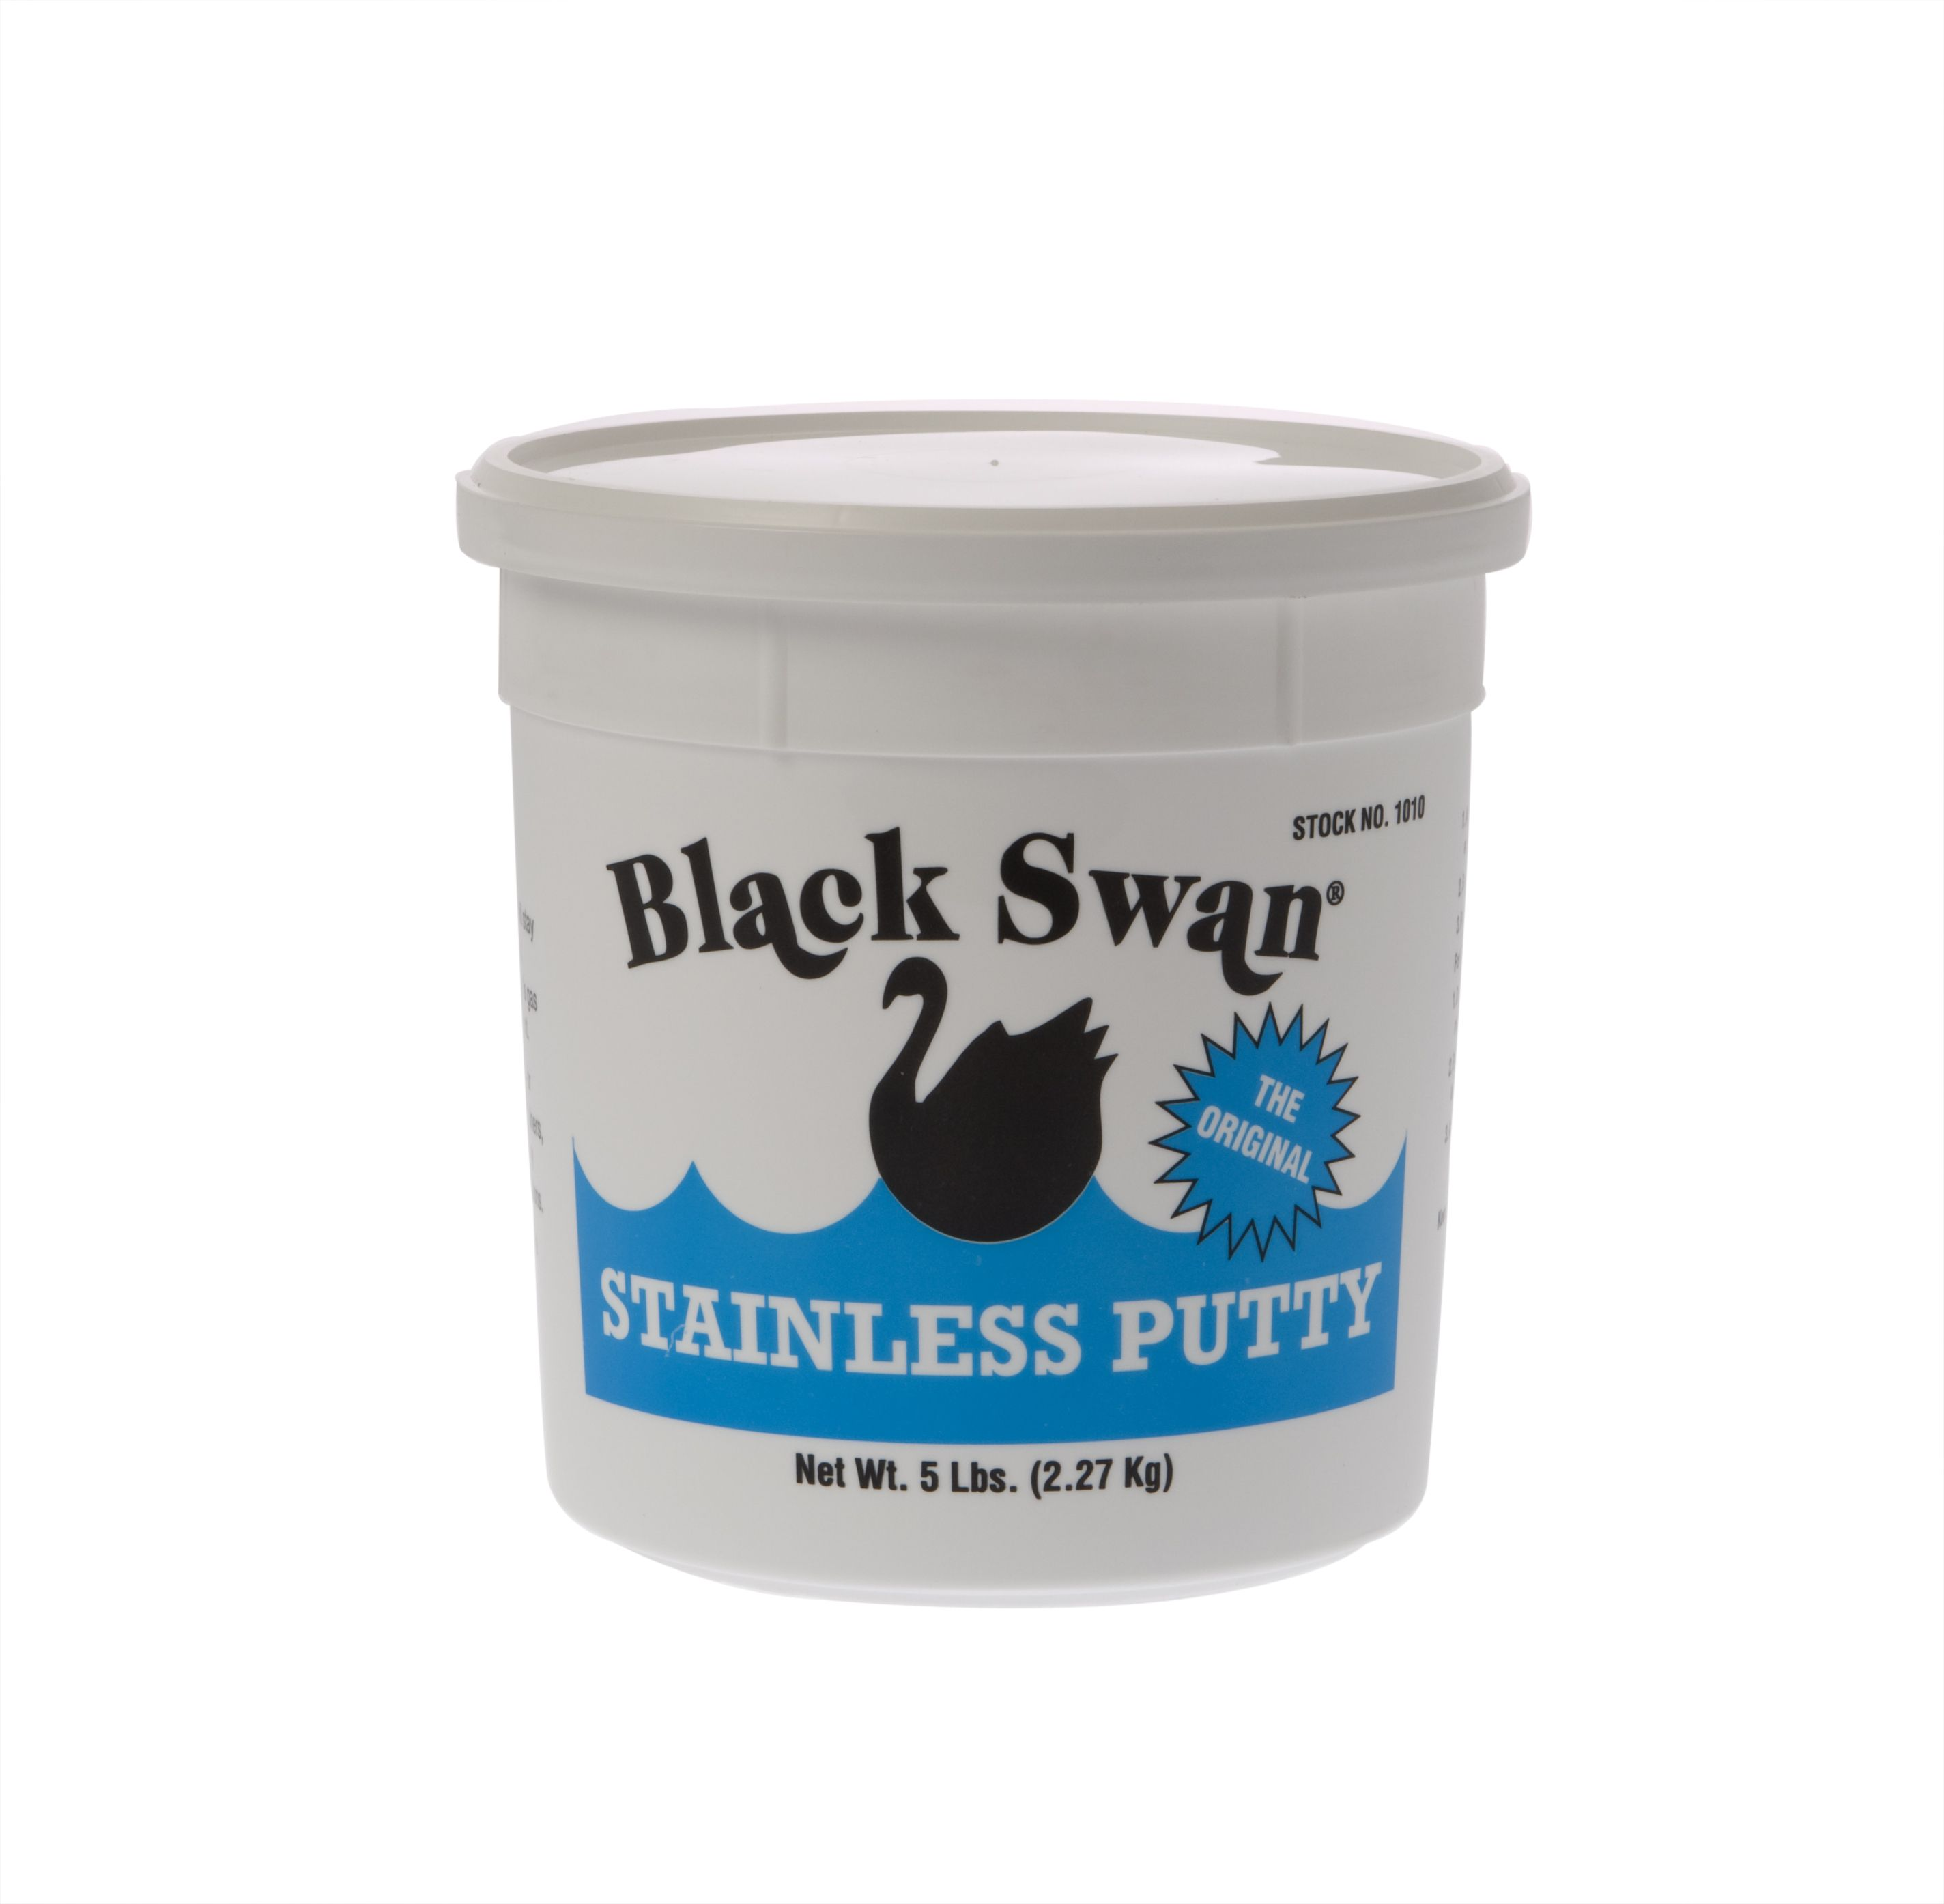 Black Swans Stainless Putty Is The Original Used In Laneige Multi Cleanser Ex 100ml Plumbing Industry It A Special Formulated Which Will Stay Soft And Flexible